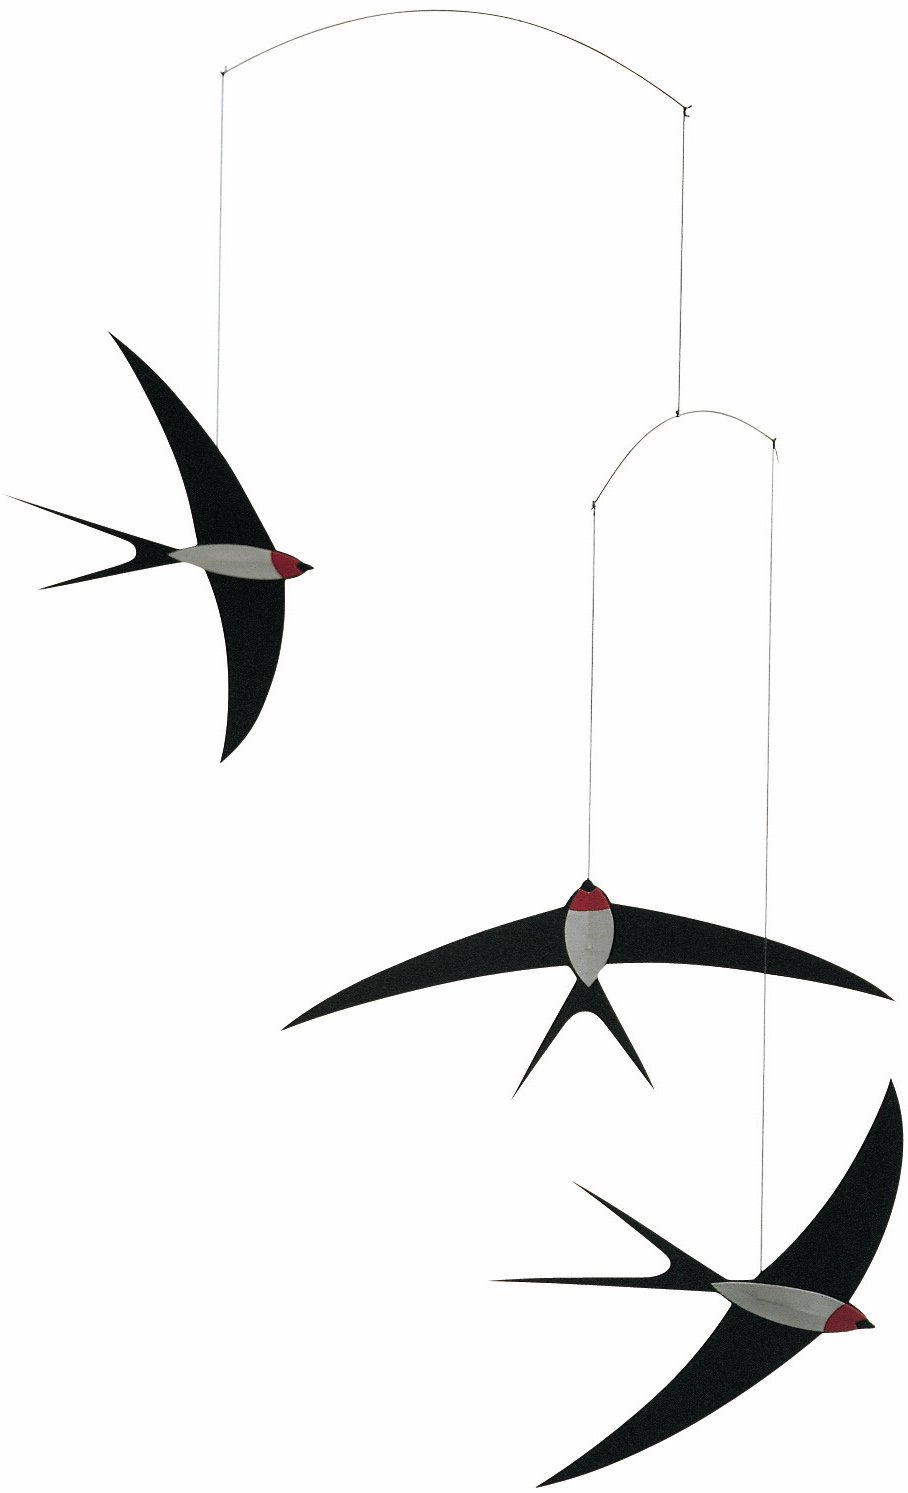 flensted mobiles  swallow hanging mobile   inches  high  - flensted mobiles  swallow hanging mobile   inches  high qualitycardboard amazonca home  kitchen